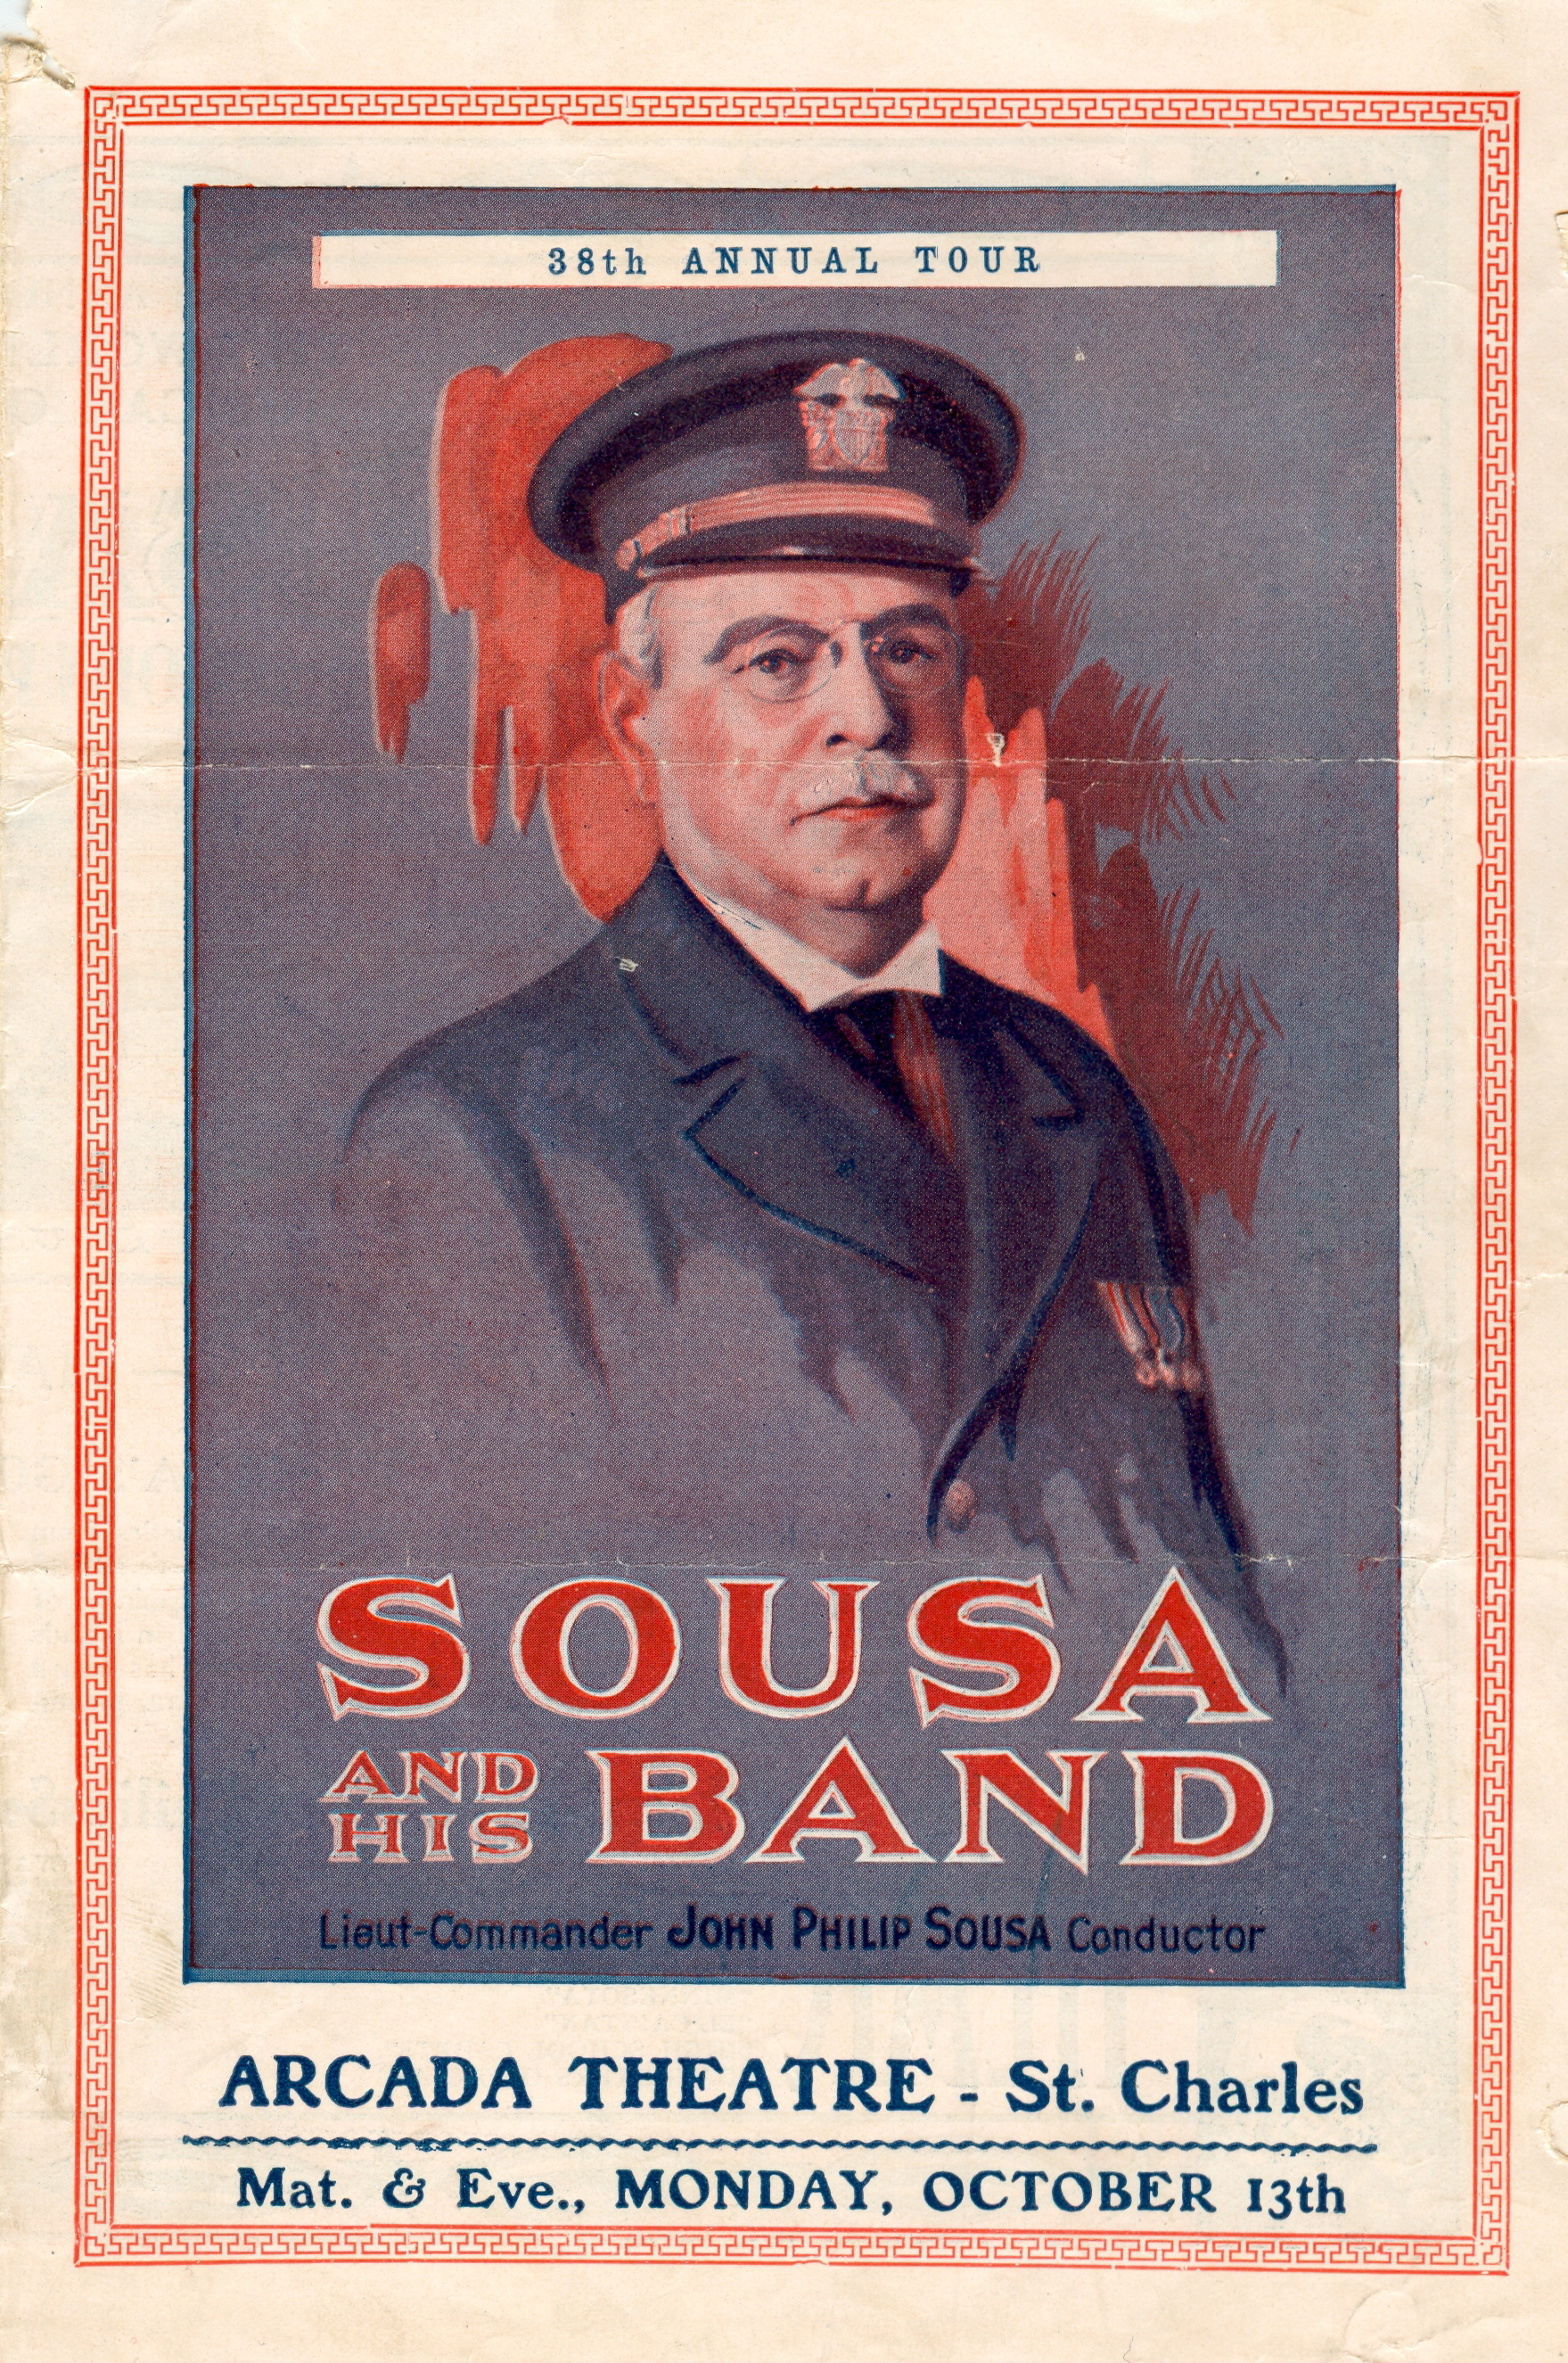 Sousa and His Band 35th Annual Tour Brochure